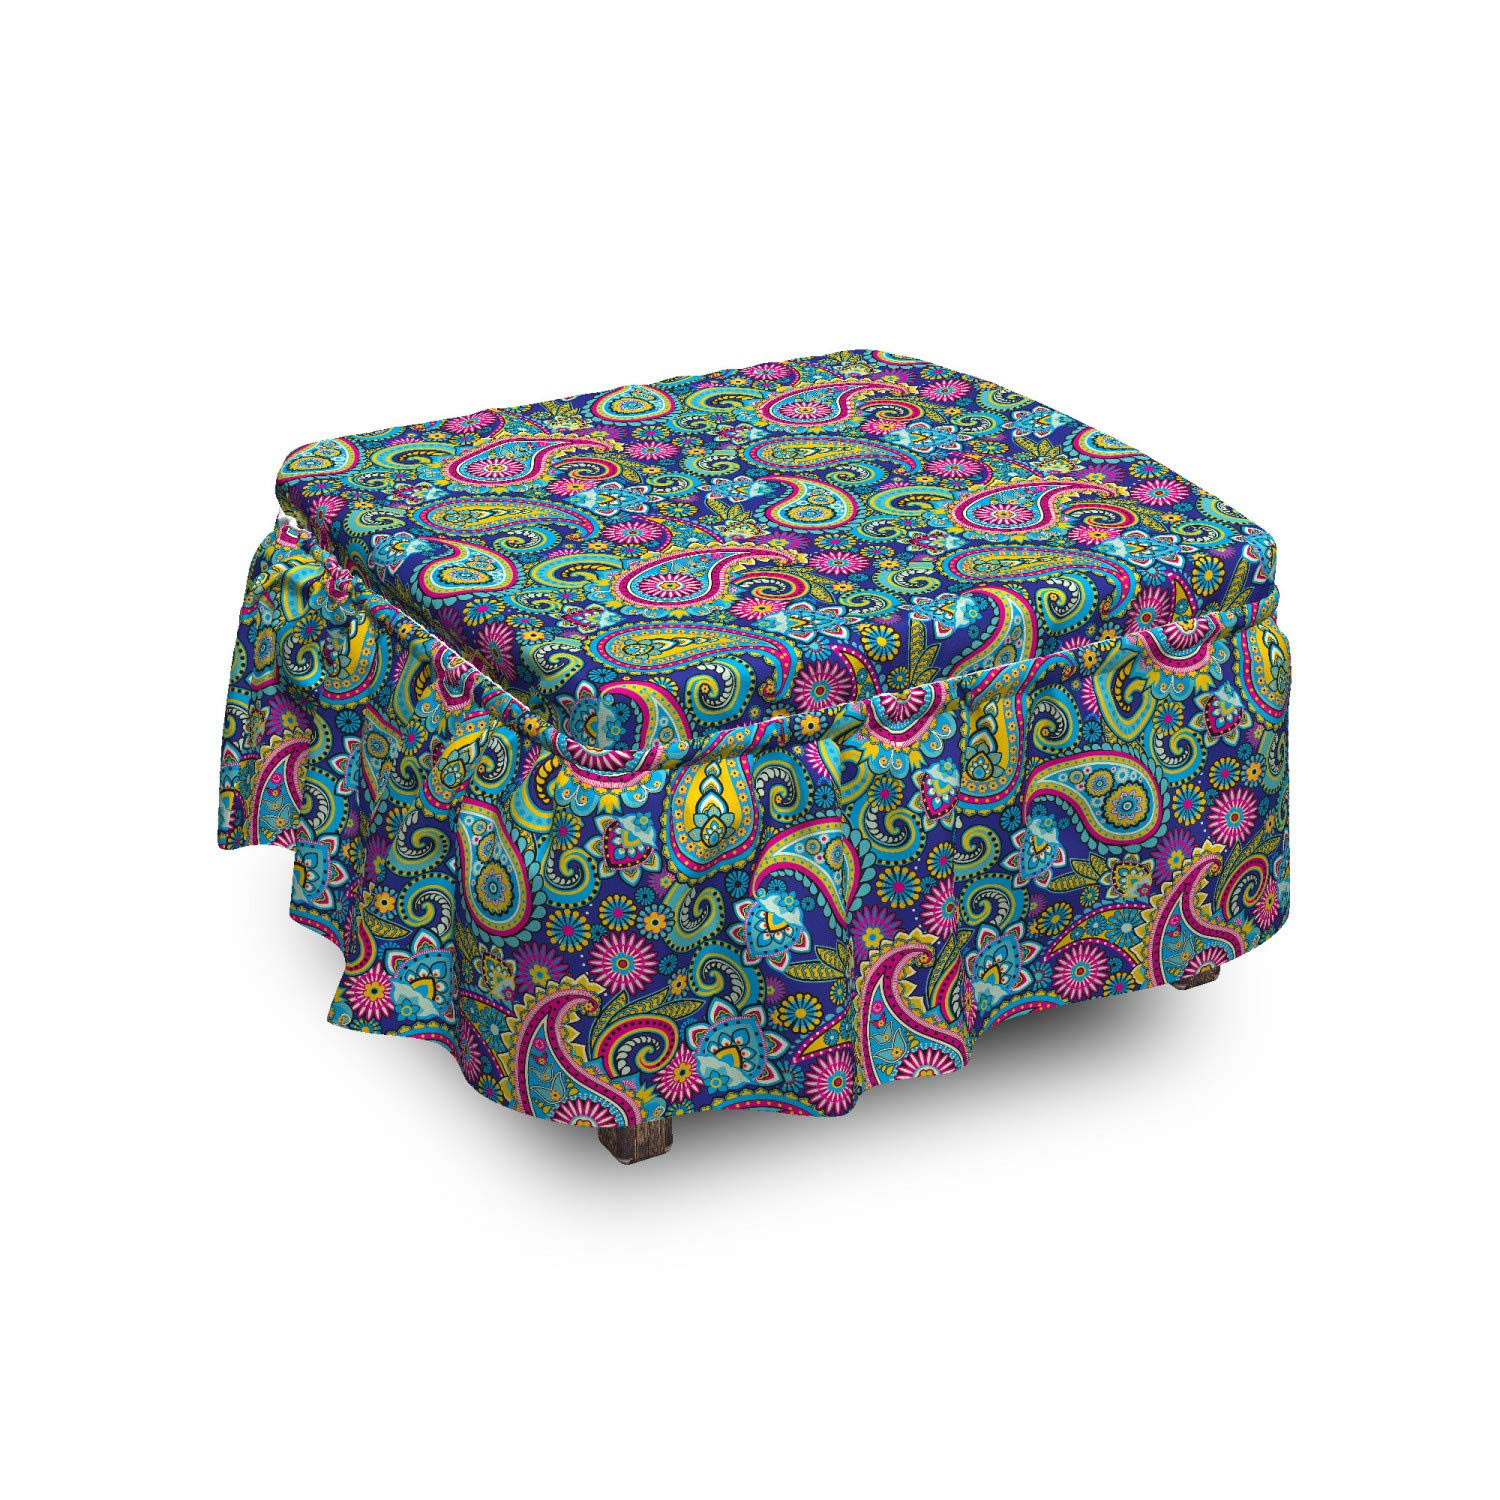 Ambesonne Paisley Ottoman Cover, Bohem Colorful, 2 Piece Slipcover Set with Ruffle Skirt for Square Round Cube Footstool Decorative Home Accent, Standard Size, Multicolor by Ambesonne